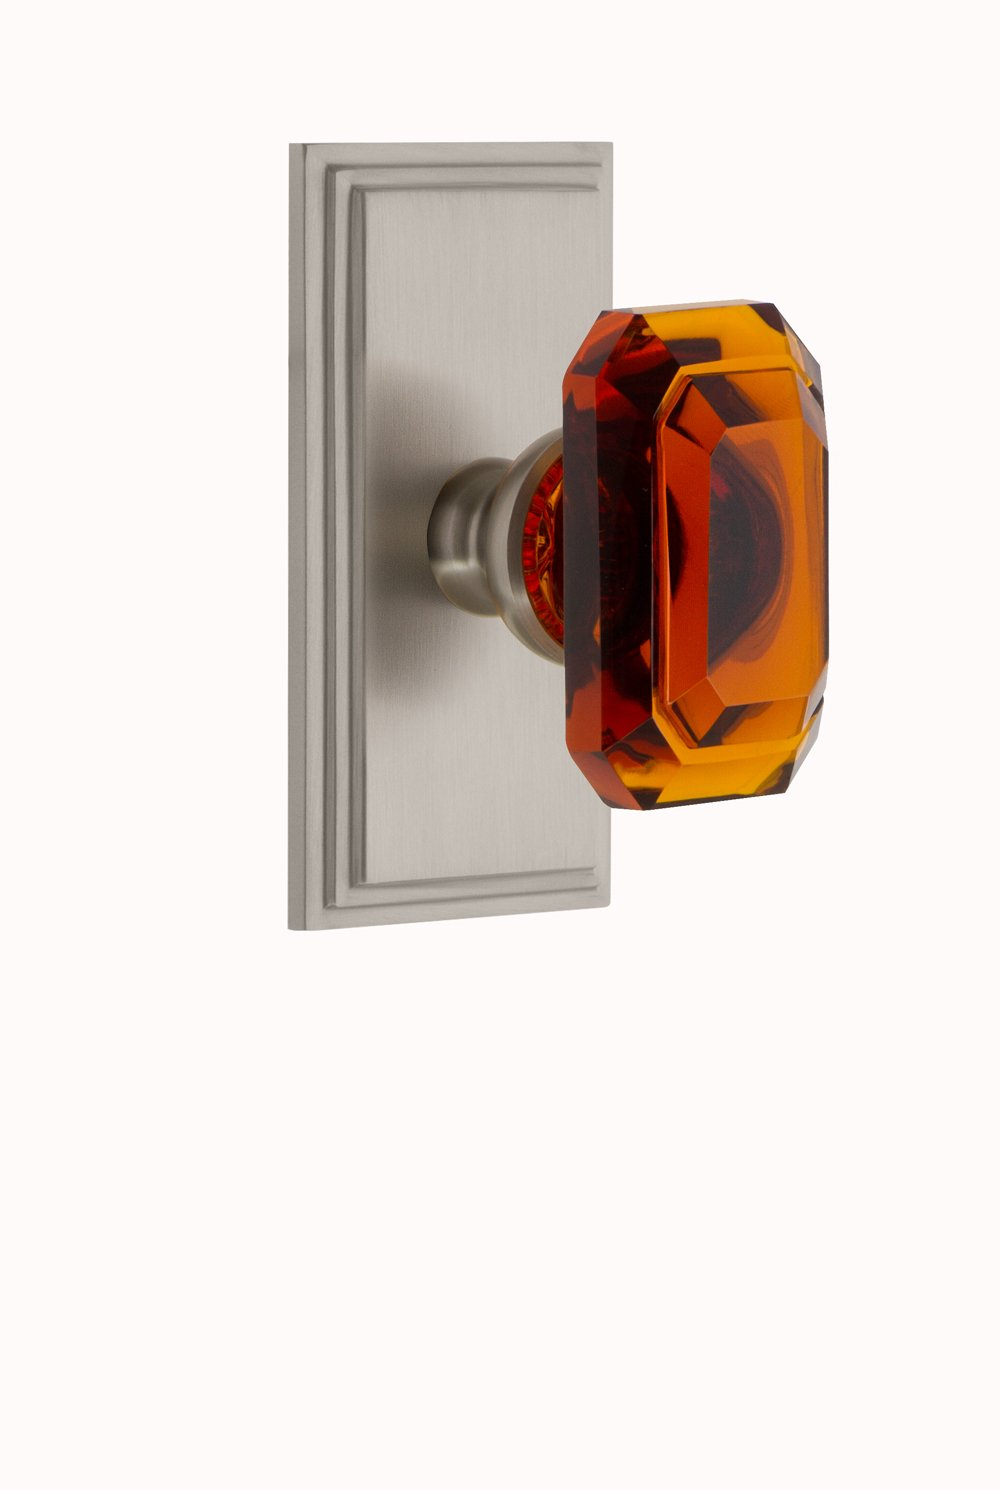 Grandeur 827763 Carre Plate Passage with Baguette Crystal Knob in Polished Nickel 2.375